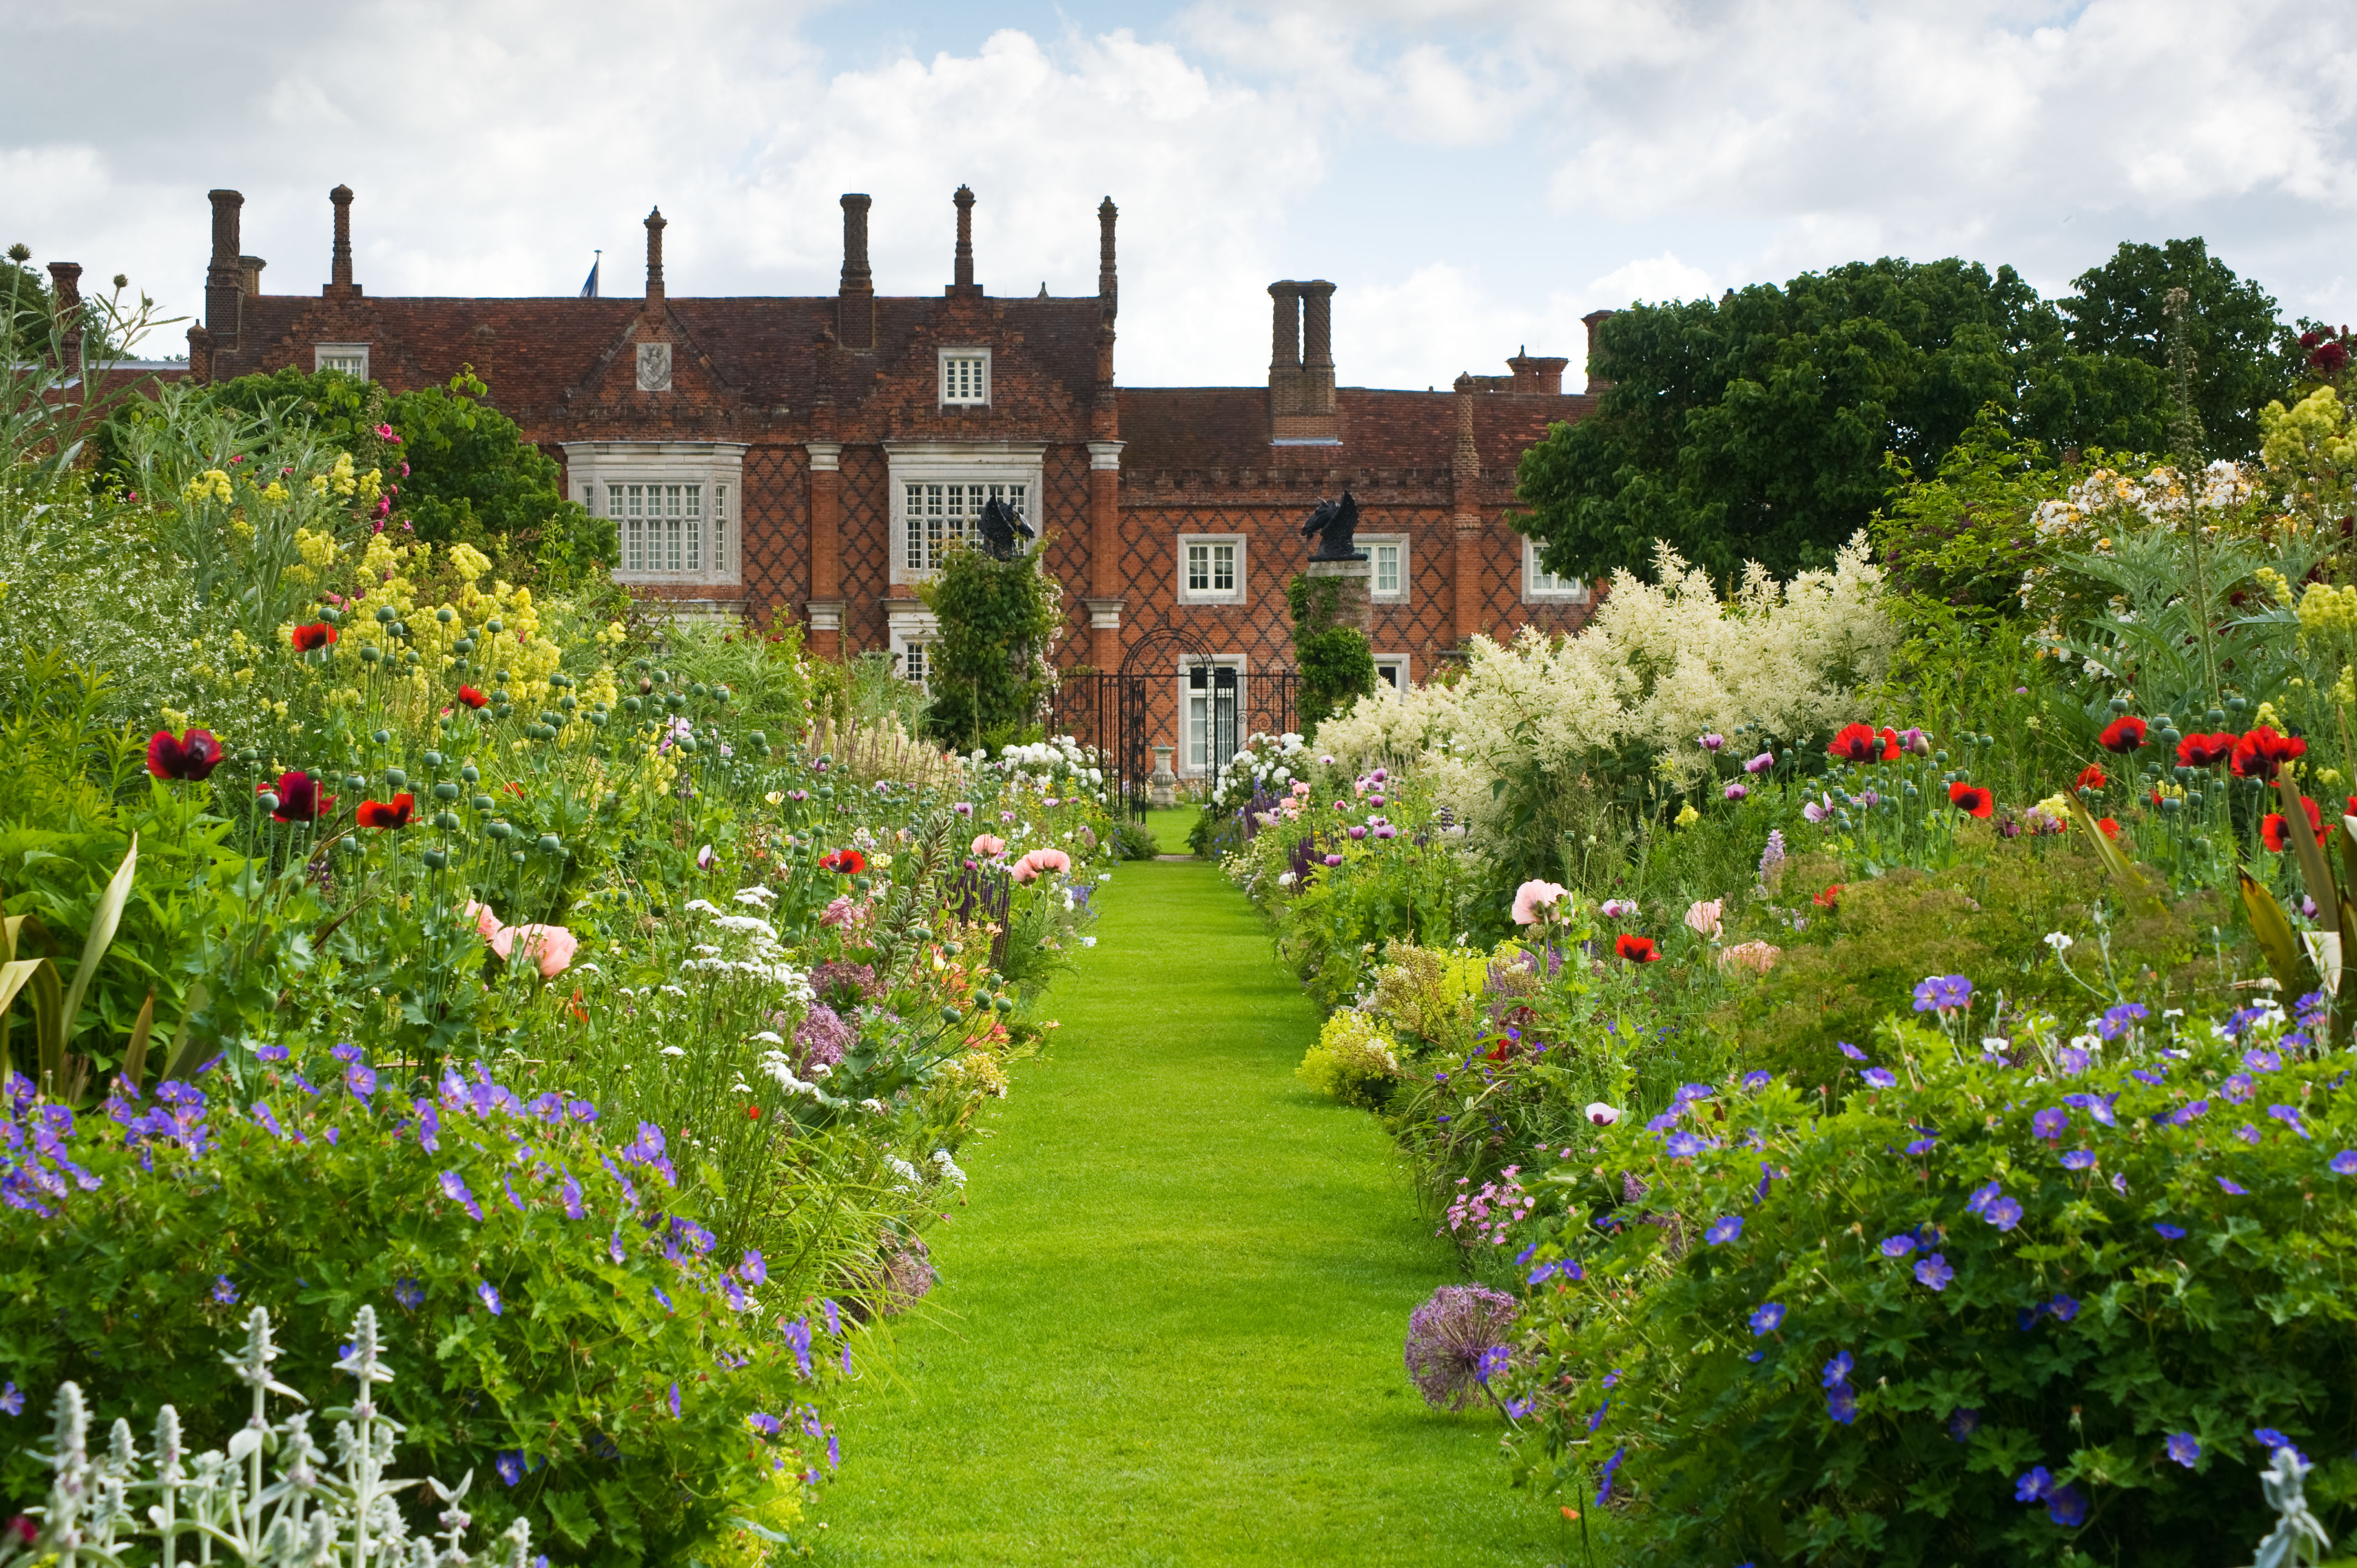 Image of Helmingham Hall and Gardens in Suffolk